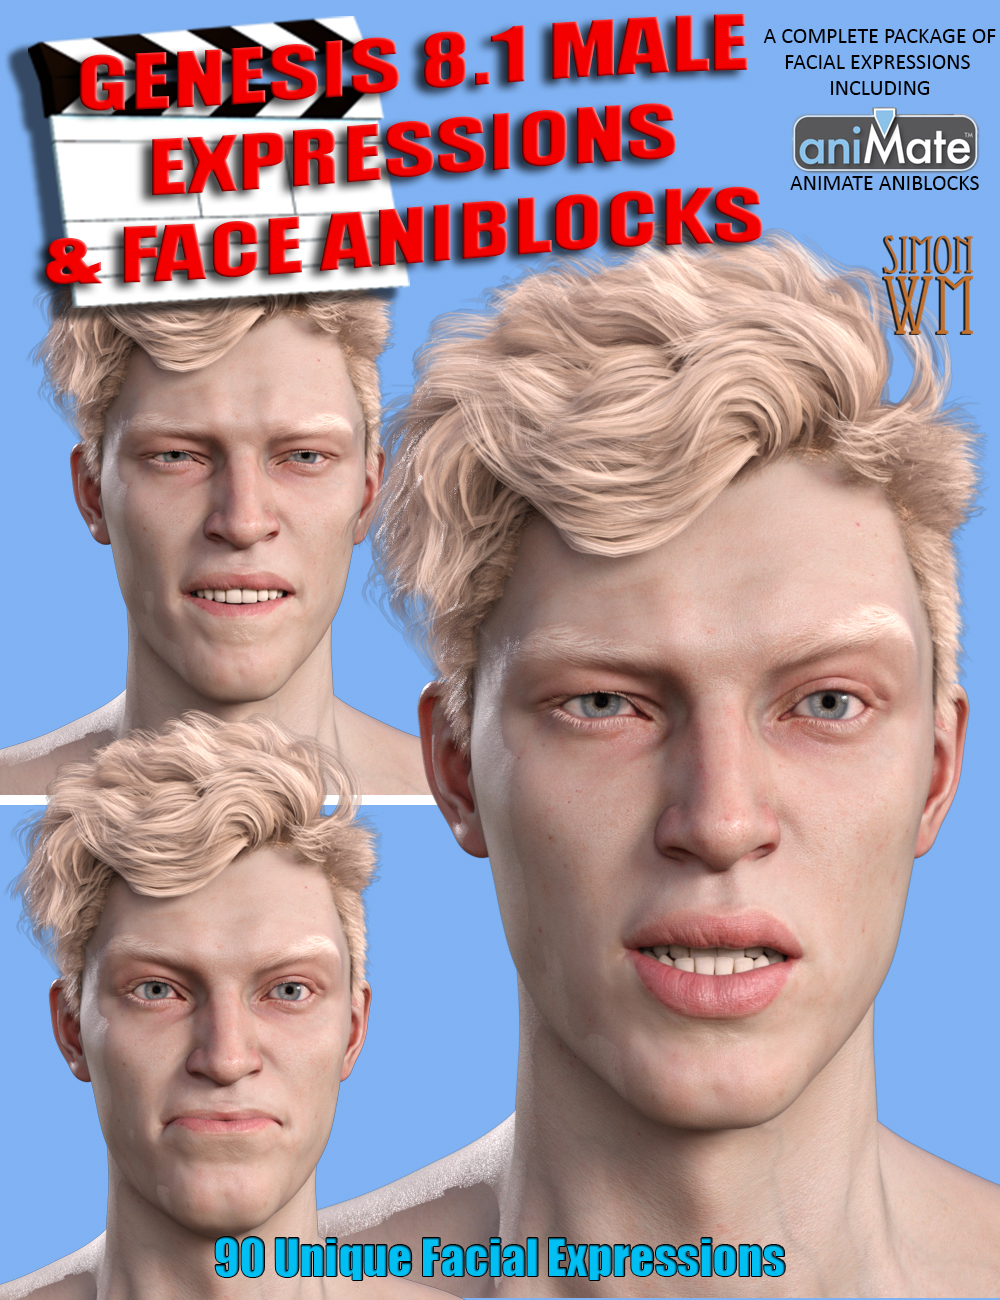 Expressions and Face aniBlocks for Genesis 8.1 Males by: SimonWM, 3D Models by Daz 3D